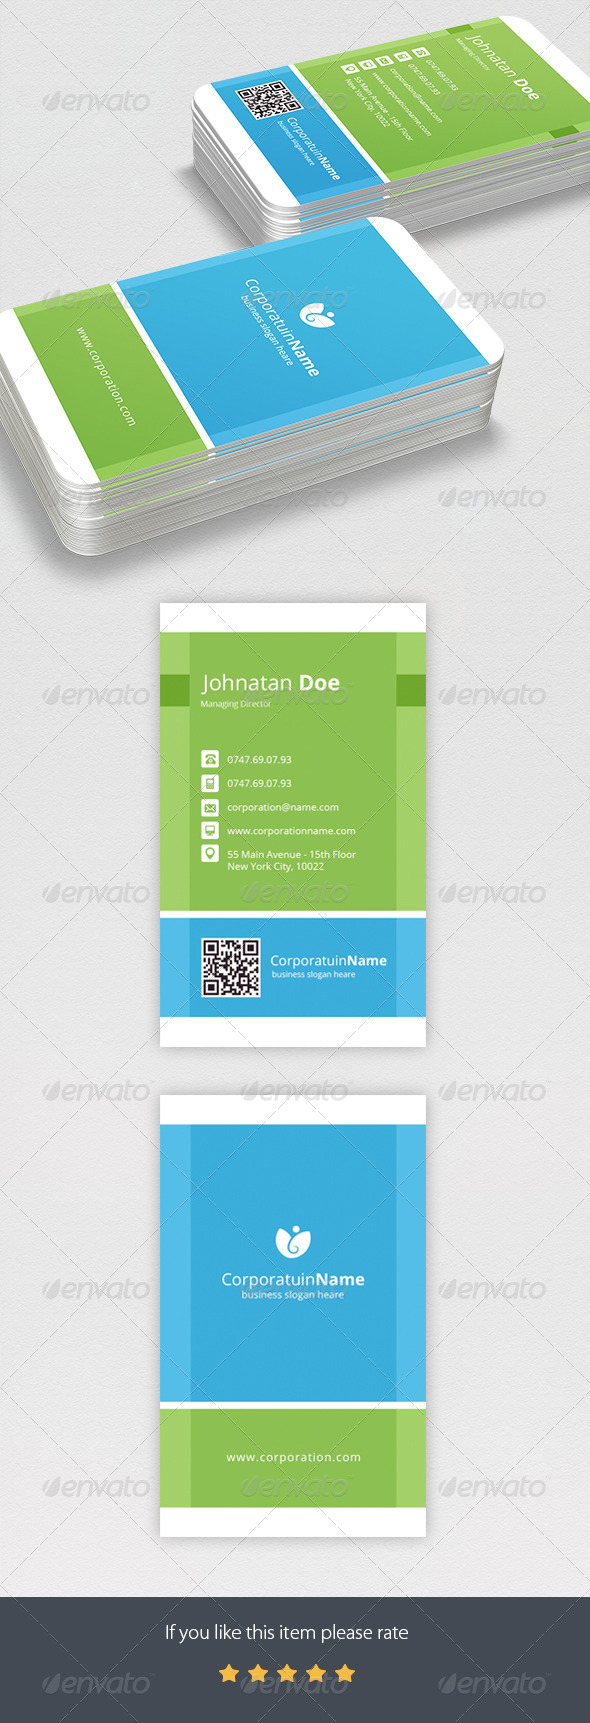 GraphicRiver Corporate Business Card 7668681